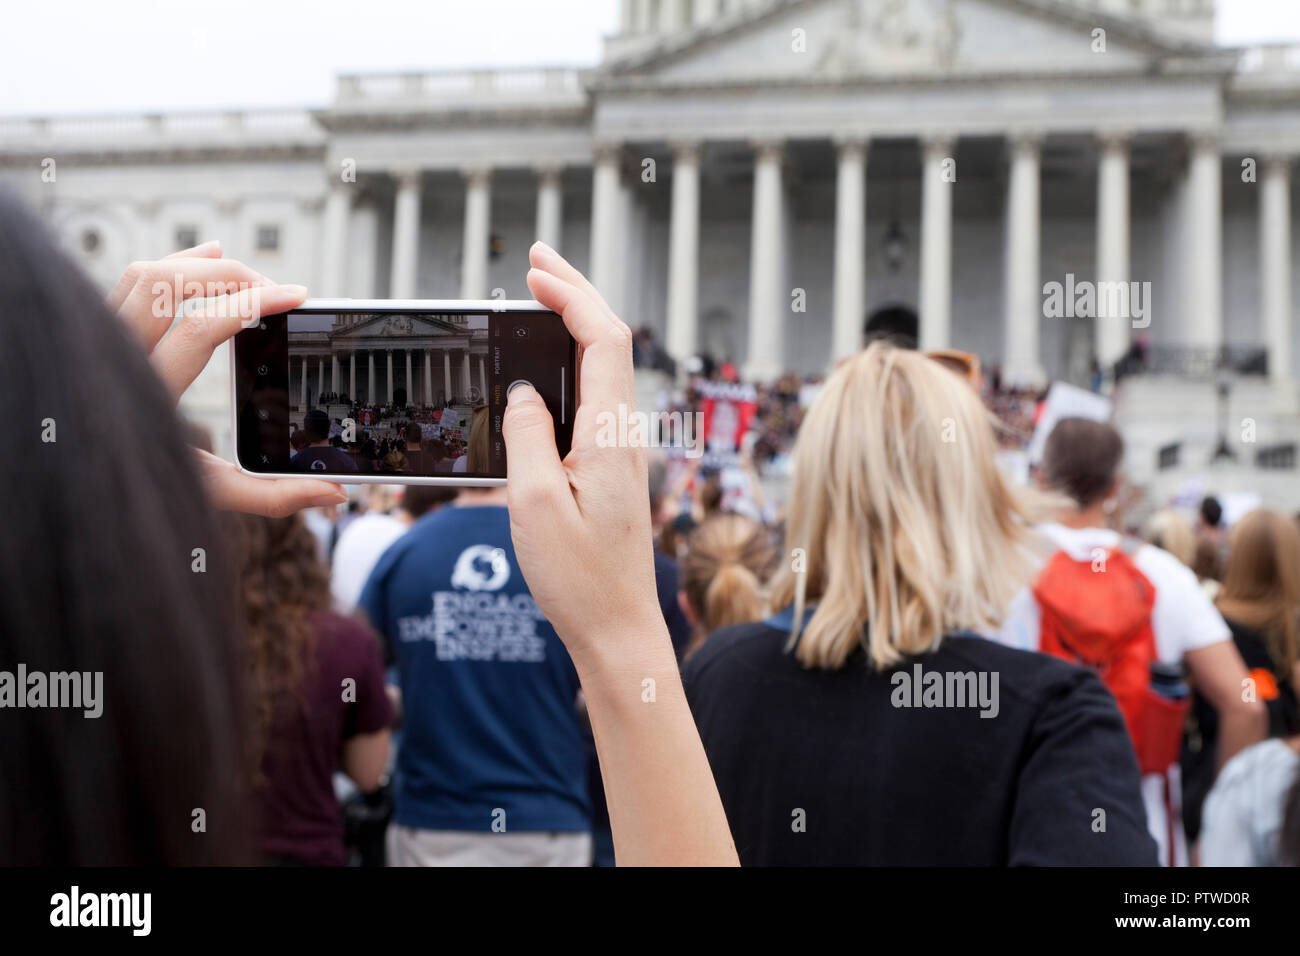 Woman taking photos of political protest using a mobile phone (iPhone) - USA - Stock Image